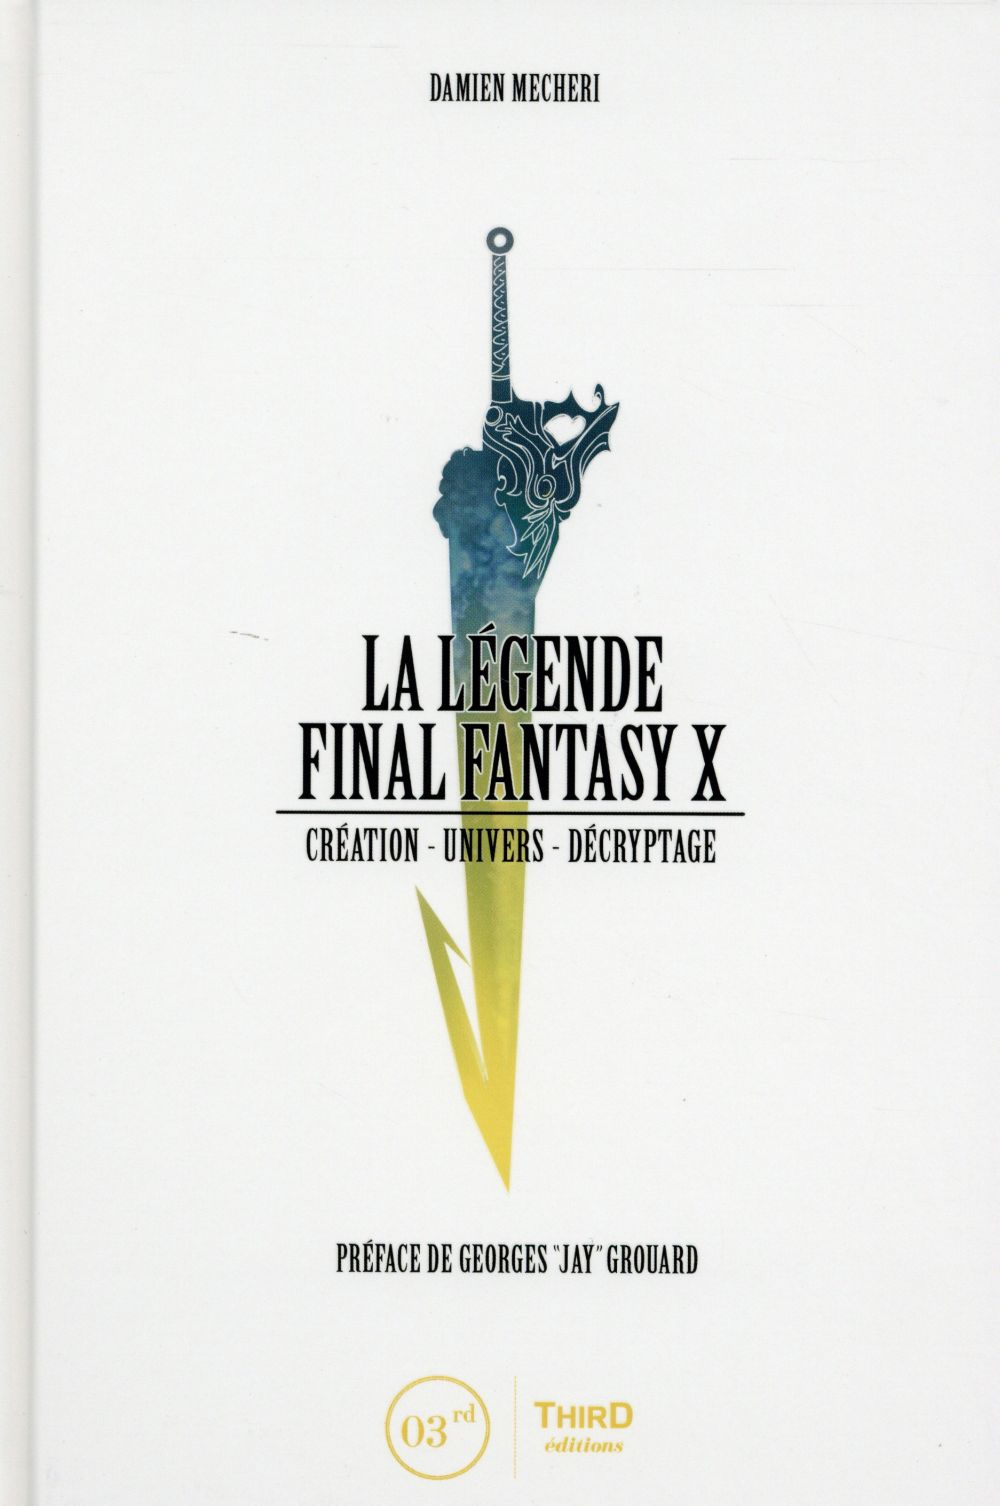 LA LEGENDE FINAL FANTASY X